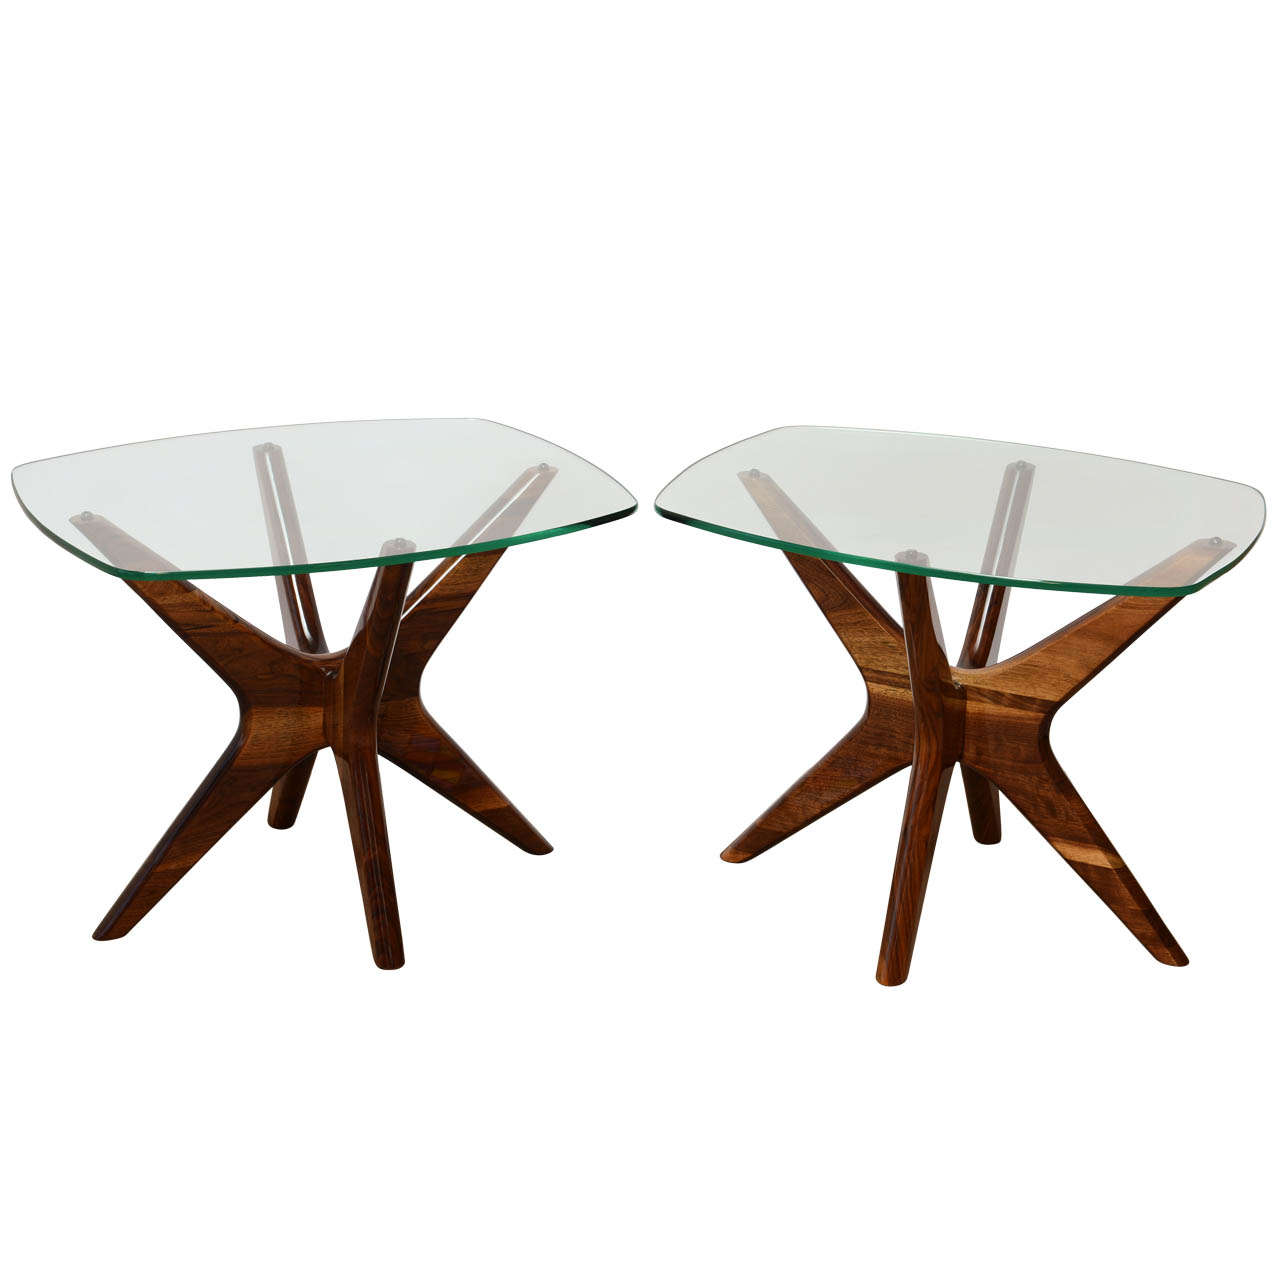 Adrian pearsall mid century sculptural side tables at 1stdibs